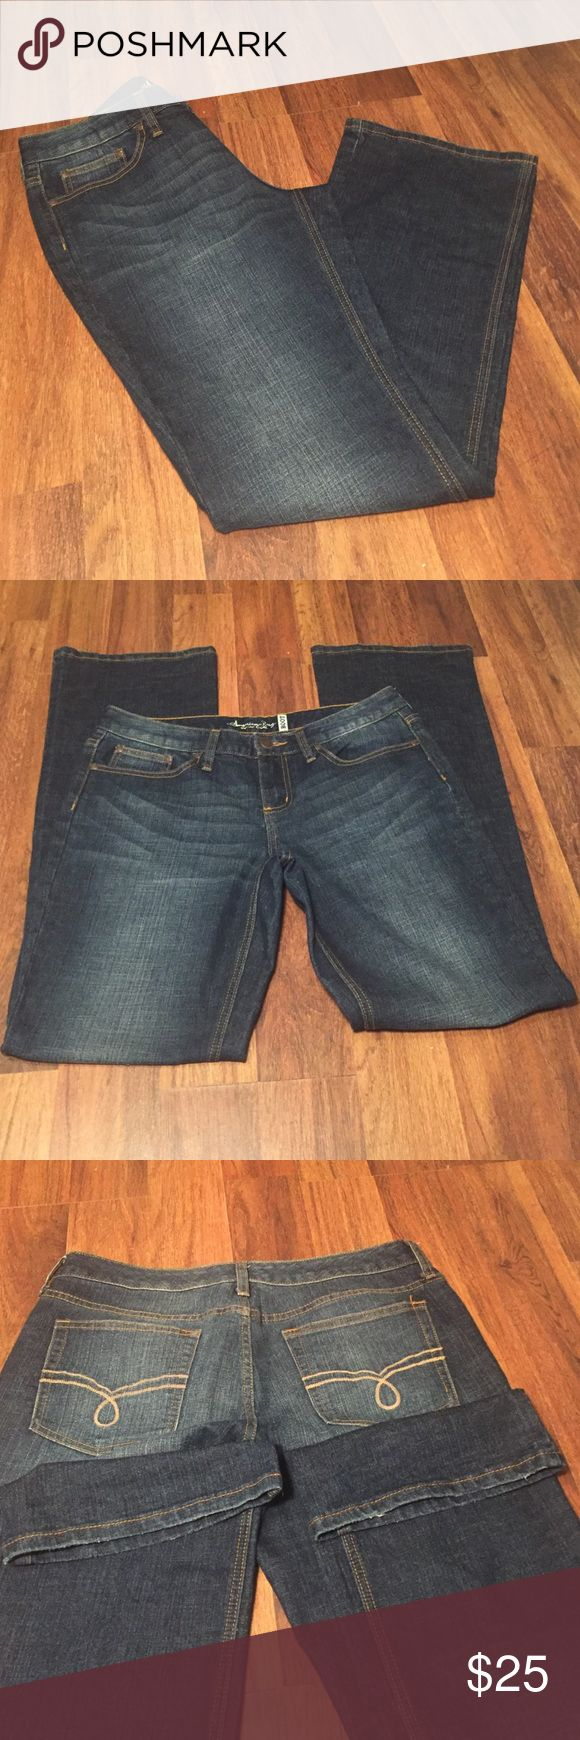 "American Rag Bootcut Jeans size 11 Long American rag Jeans size 11 long.  Jeans are bootcut.  Measurements: waist-17"" laid flat, inseam-34"", waist to crotch- 9"".  Jeans are in EUC, slight wear on bottom of hem. American Rag Jeans Boot Cut"